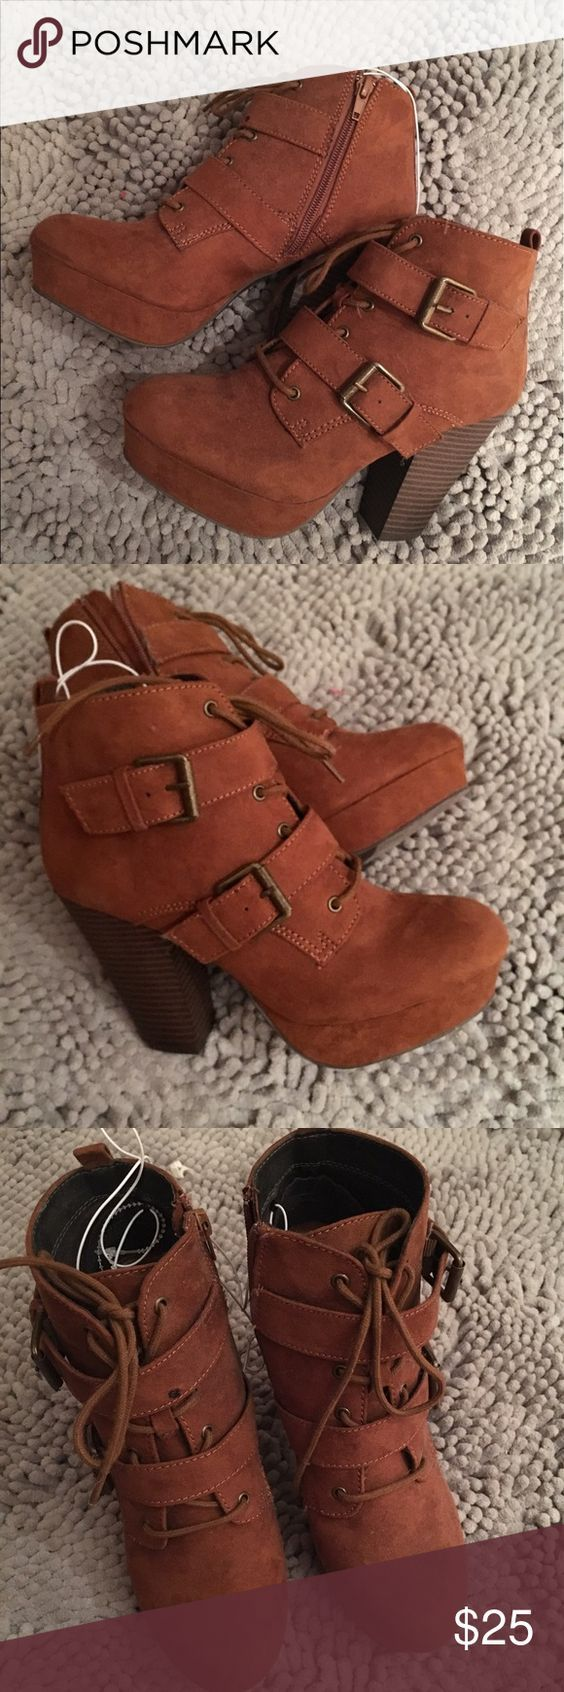 New cute booties! Chestnut / tan / brown size 6 New booties. Tan/chestnut/ brown . It's a size 6, I normally wear a 6.5 and these still fit nicely. So I would say 6-6.5! About a 3 inch heel . Let me know if you have any questions!! Shoes Ankle Boots & Booties